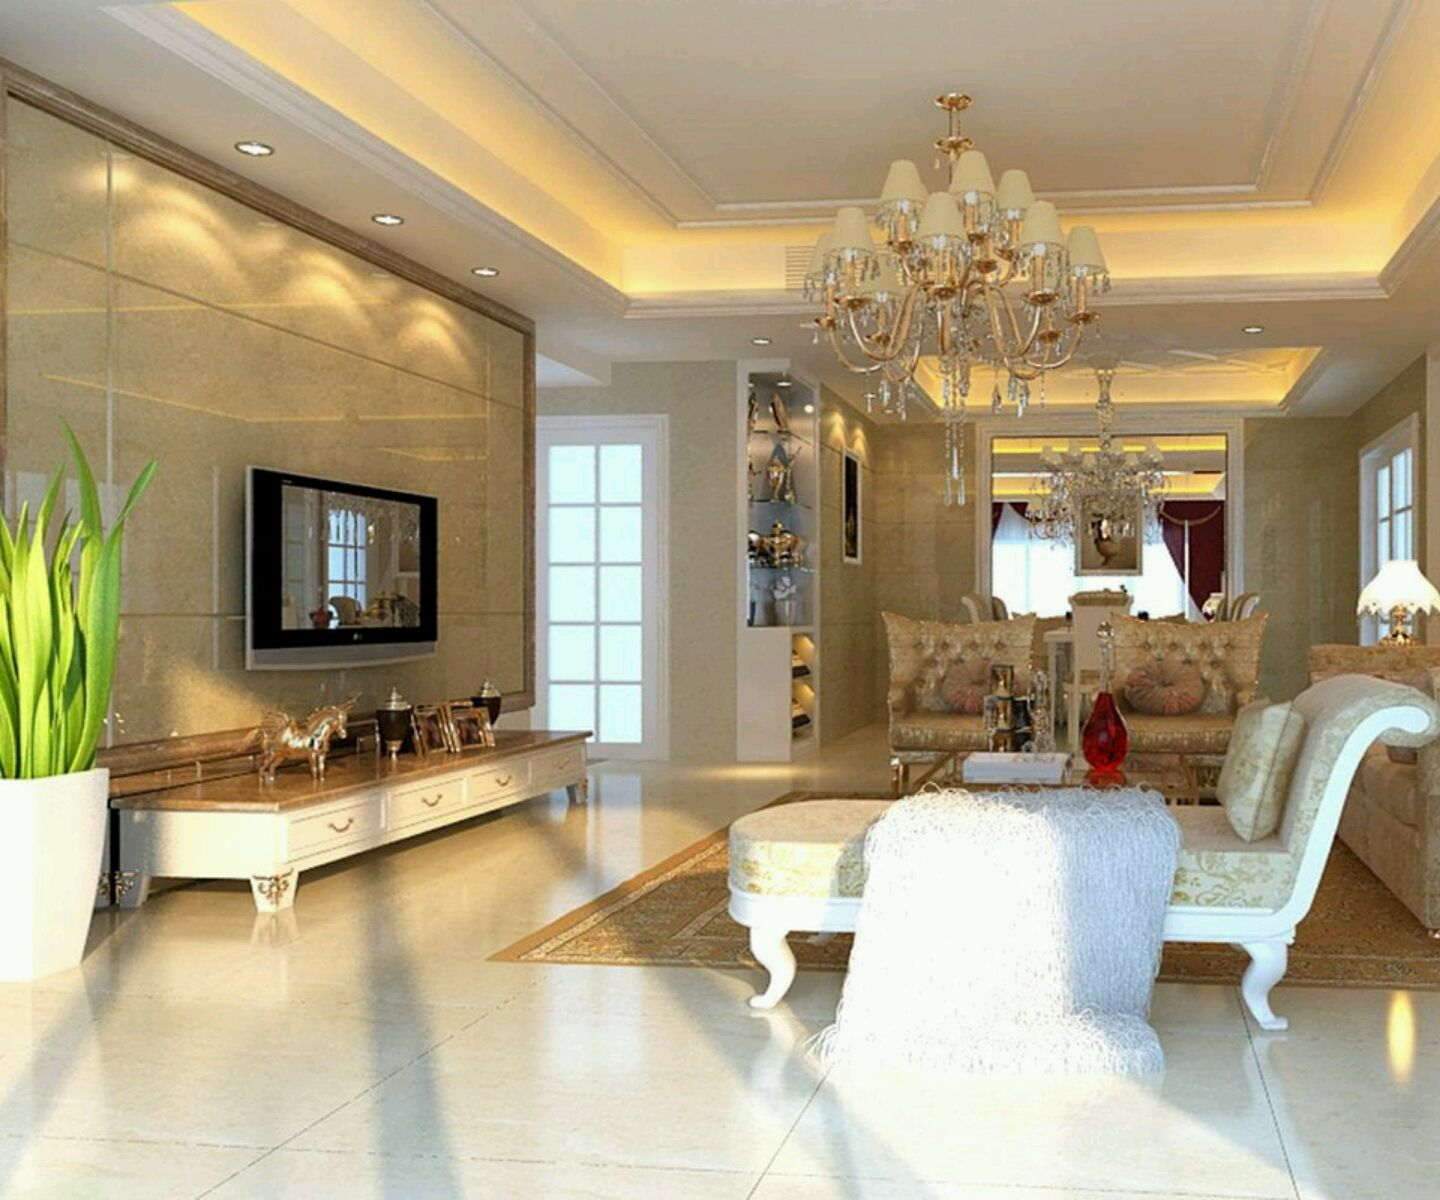 Living Room Luxury Designs Decor Fascinating Luxury Homes Interior Decoration Living Room Designs Ideas New . Design Inspiration